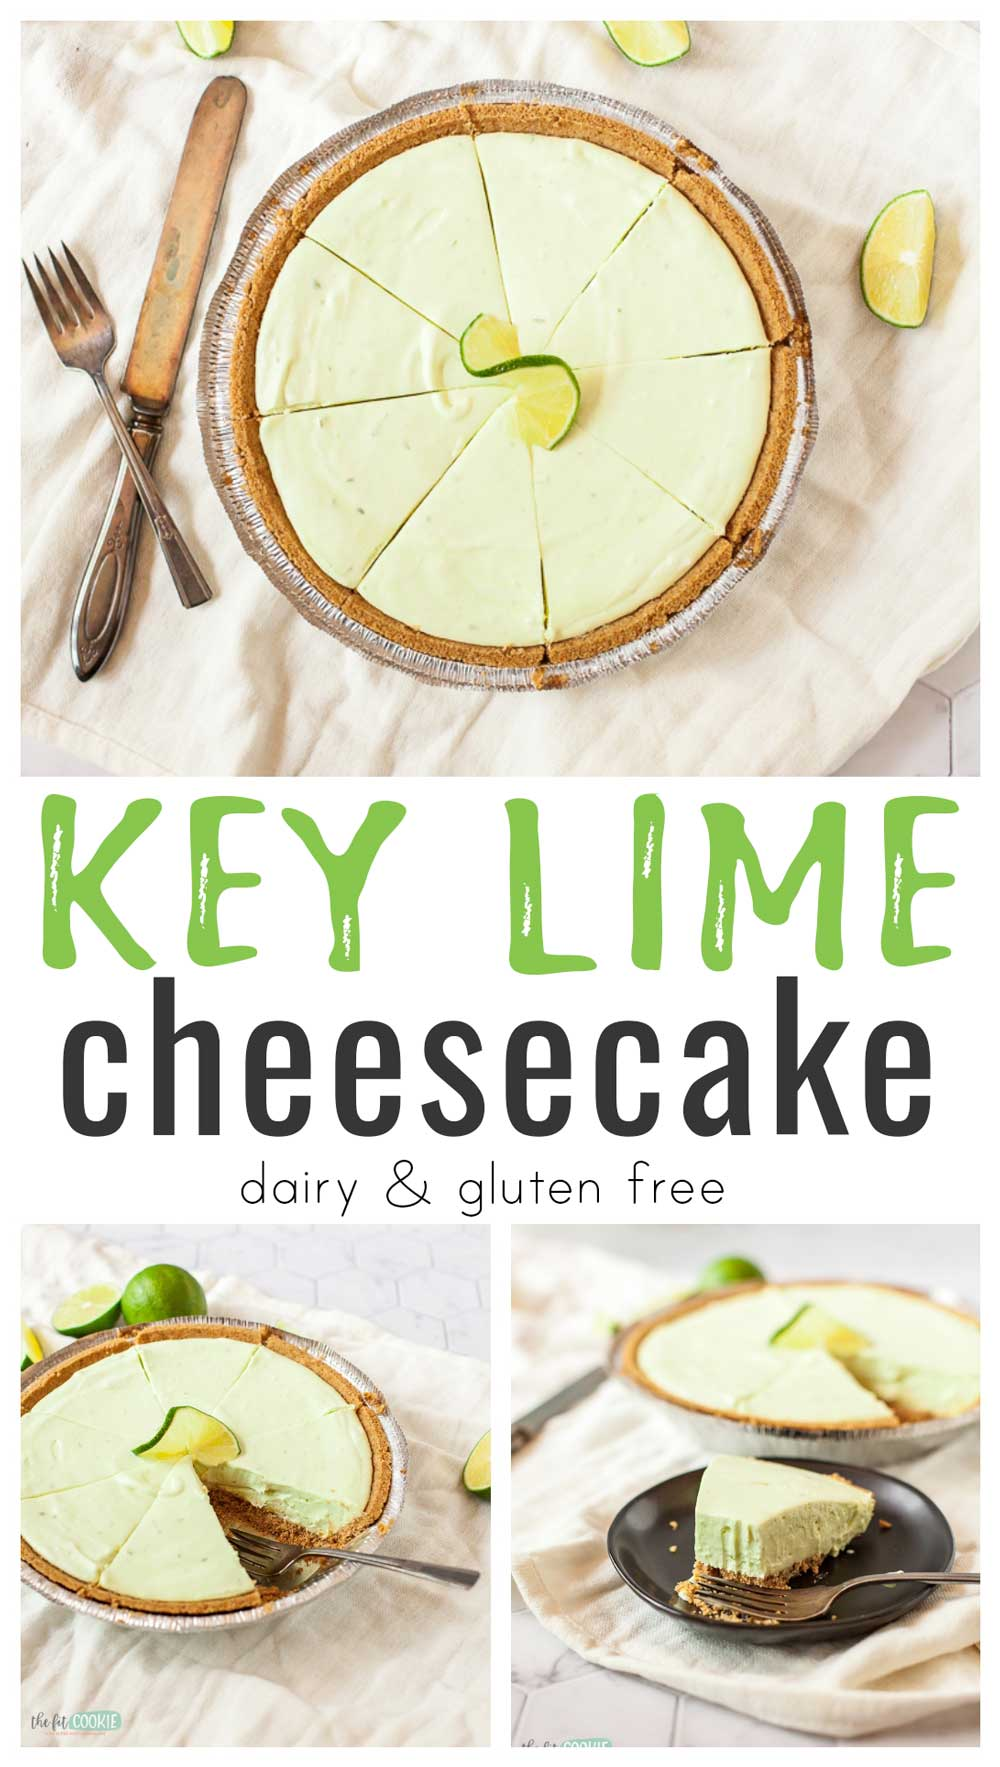 photo collage of dairy free key lime cheesecake with text overlay